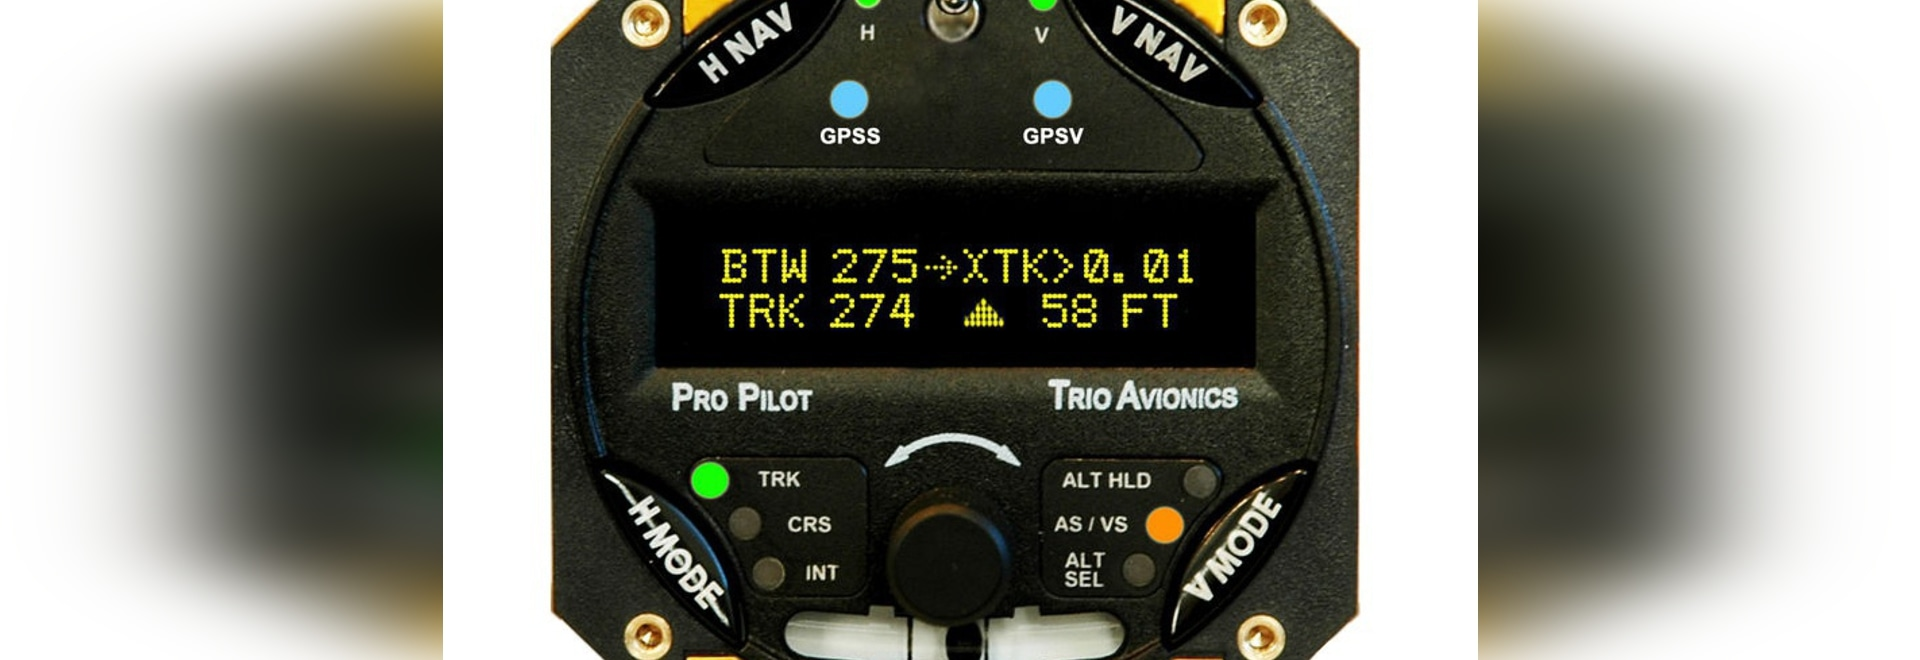 Company Working to Bring non-TSO'd Autopilot to Certified Airplanes